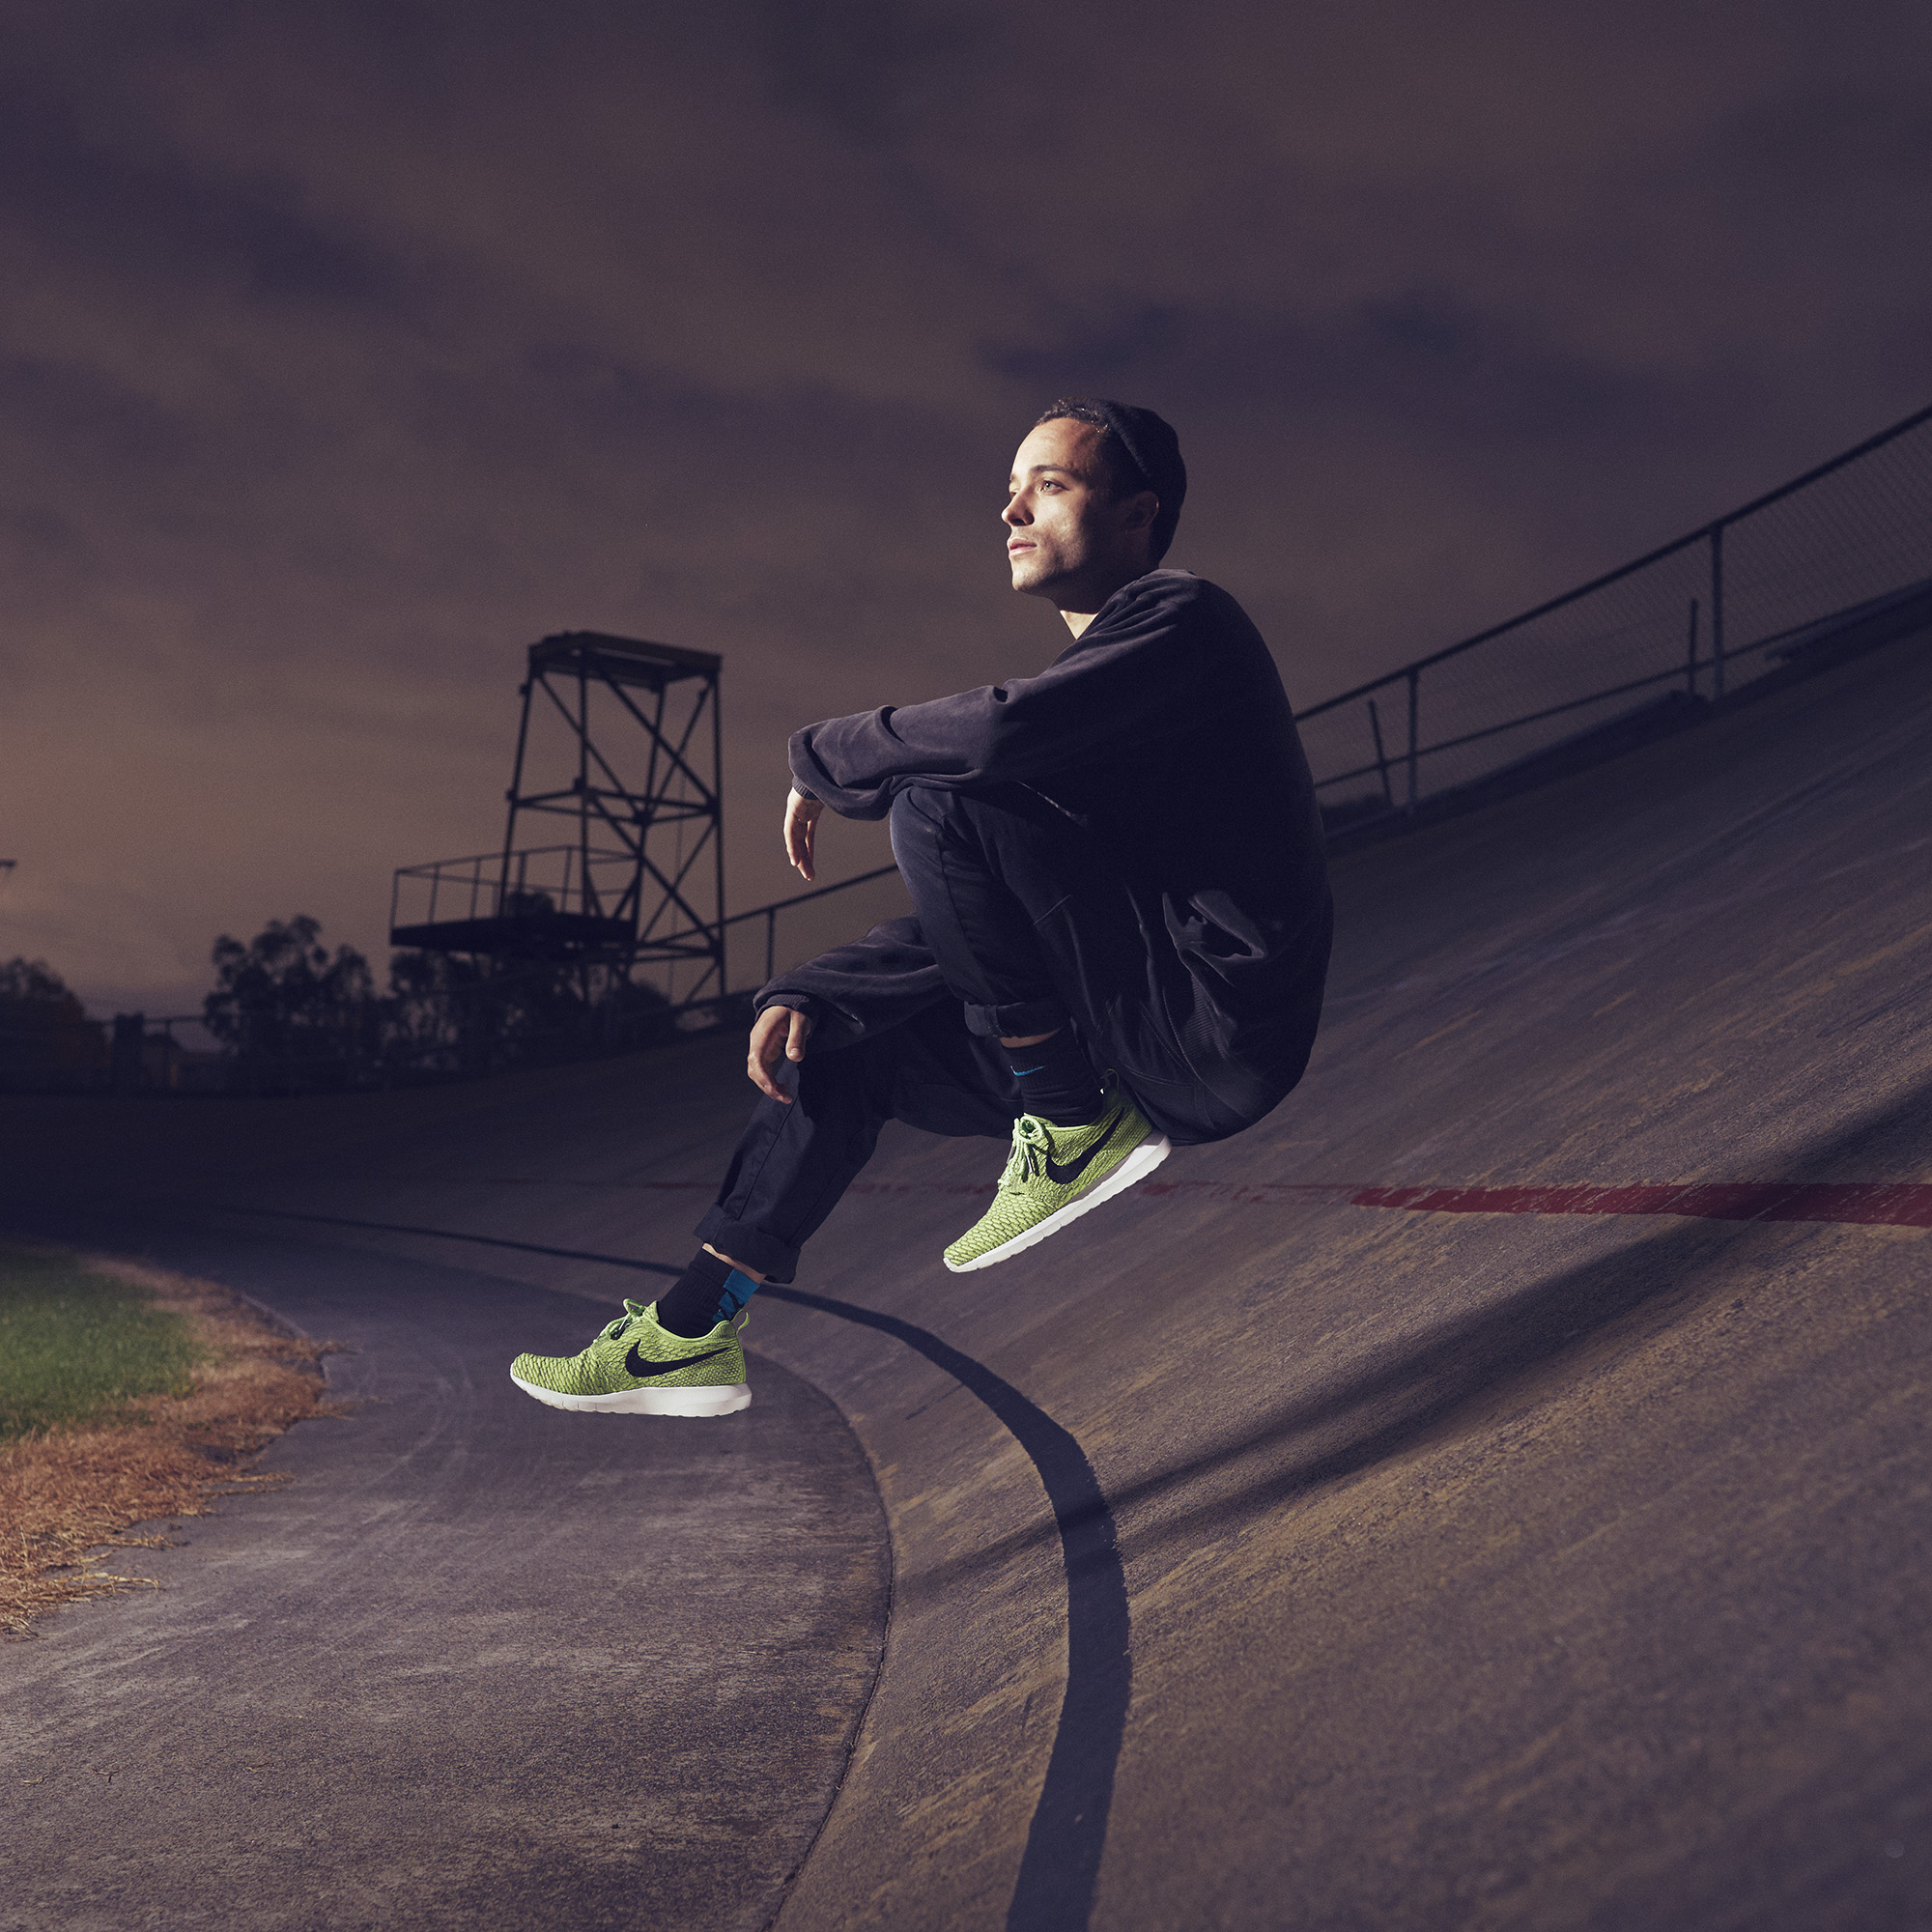 nike-thom-rigney-professional-photographer-levitation-campaign-advertising-australia-sneakers-009